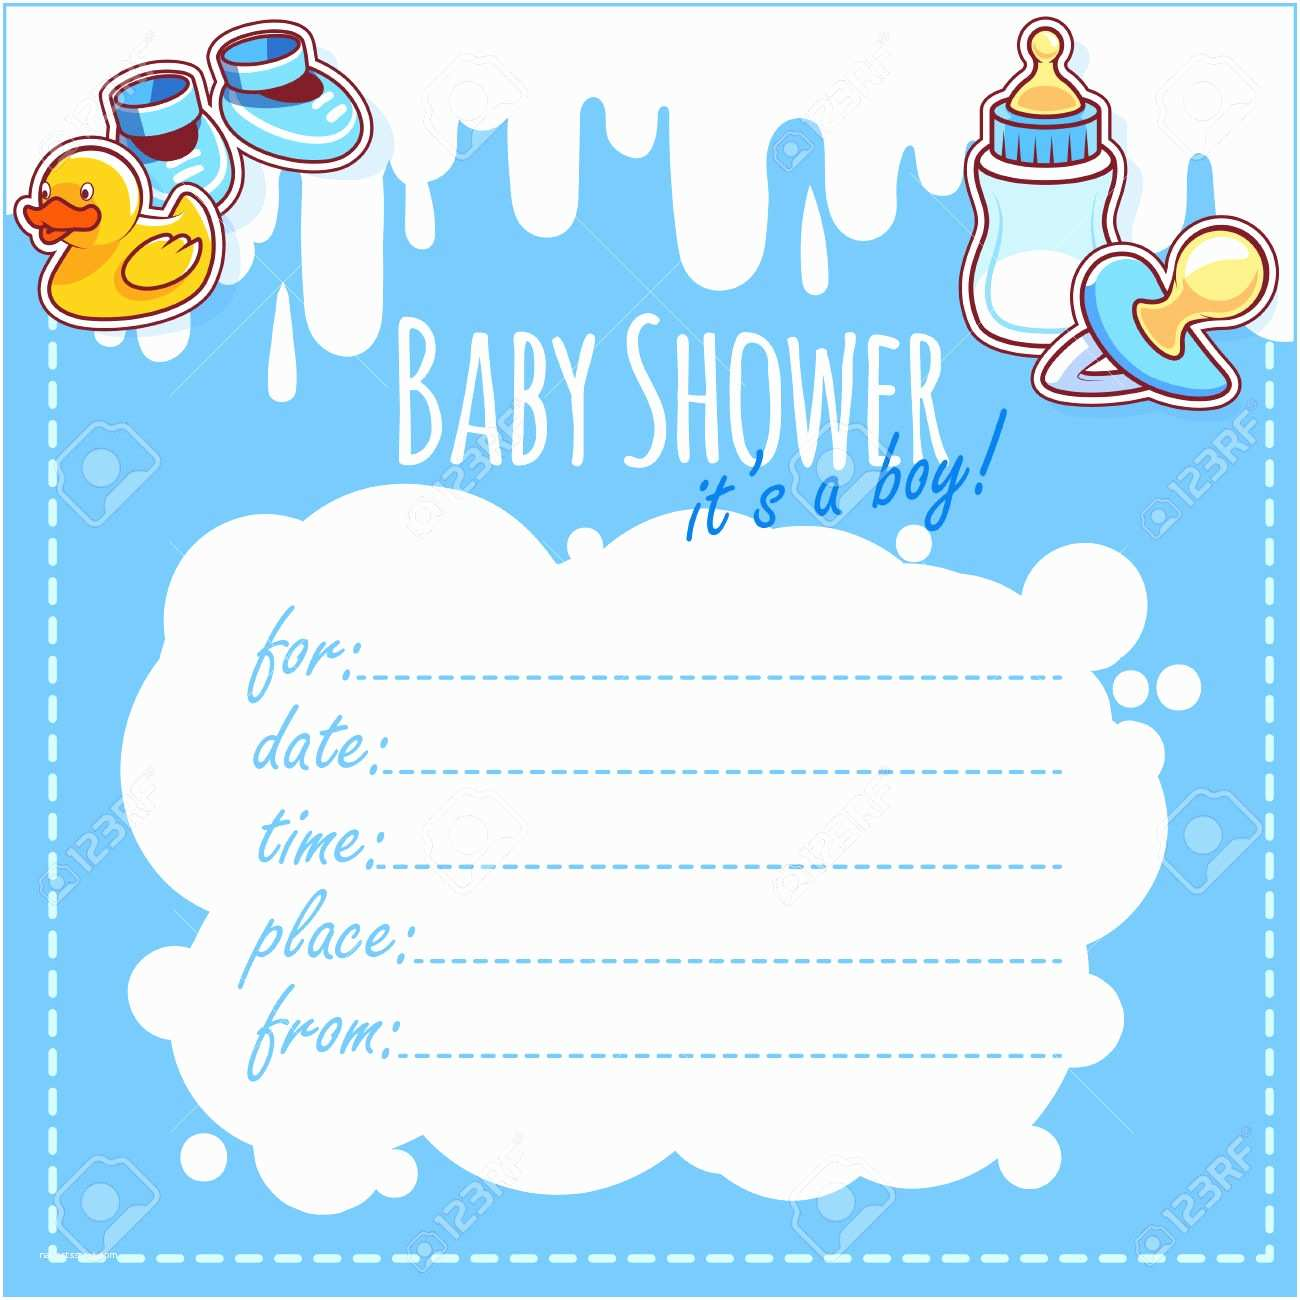 Boy Baby Shower Invitations It S A Boy Invitations